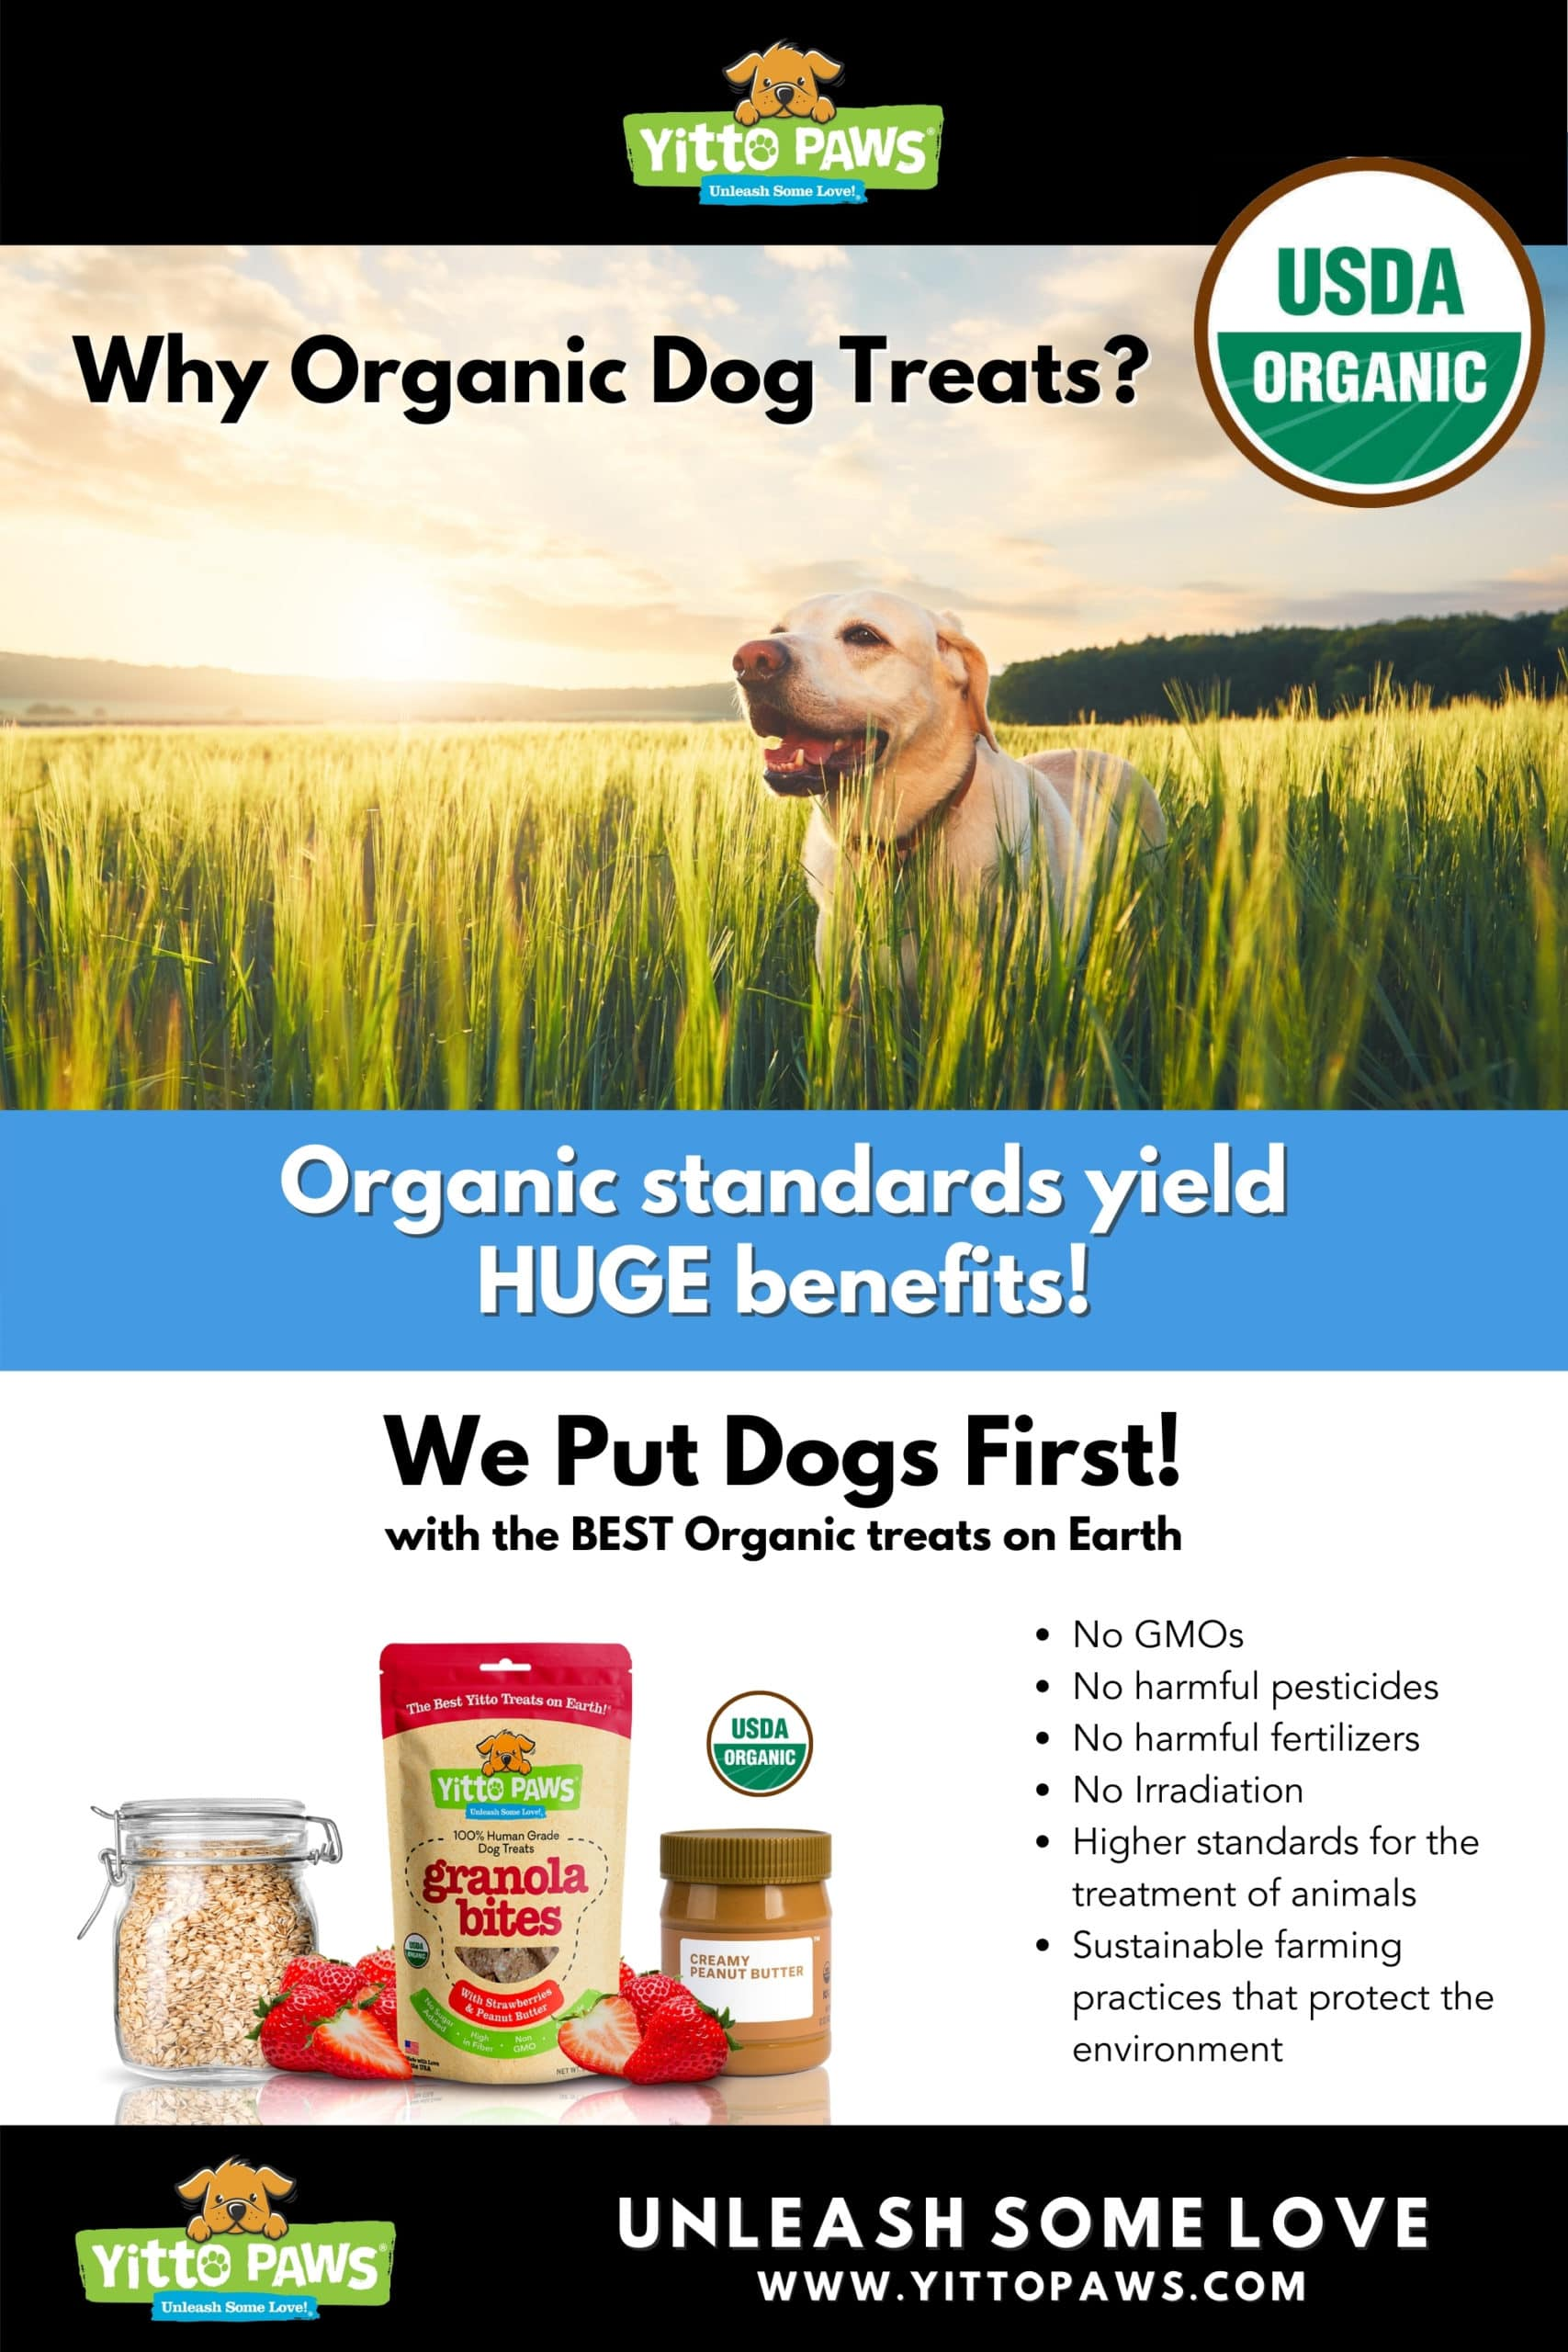 Why are organic dog treats important? Organic standards yield HUGE benefits for dogs and our environment!